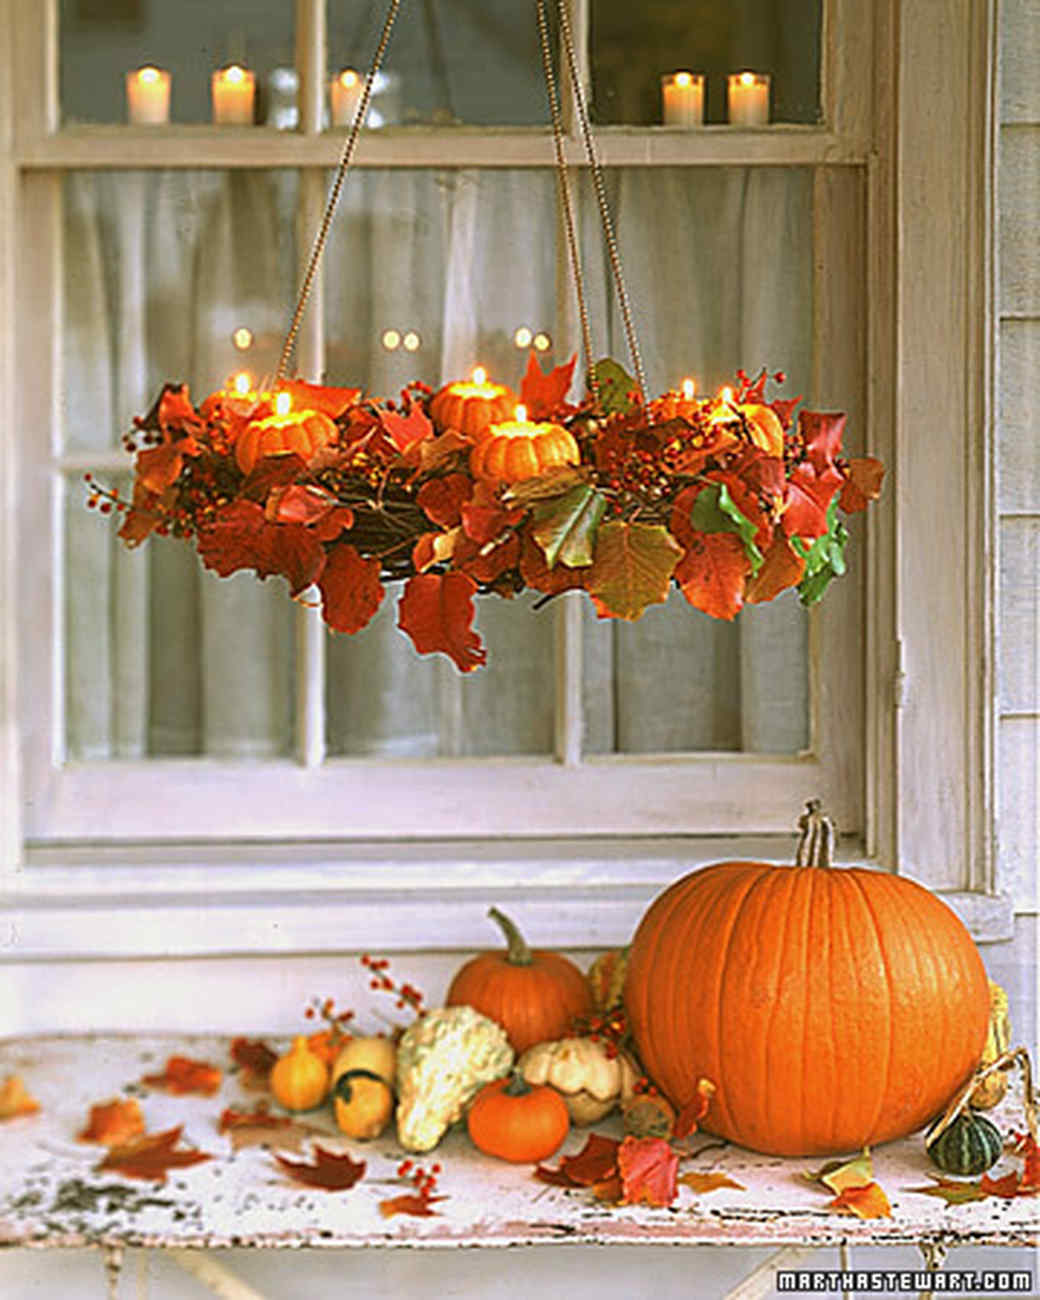 & Fall Harvest Decorating